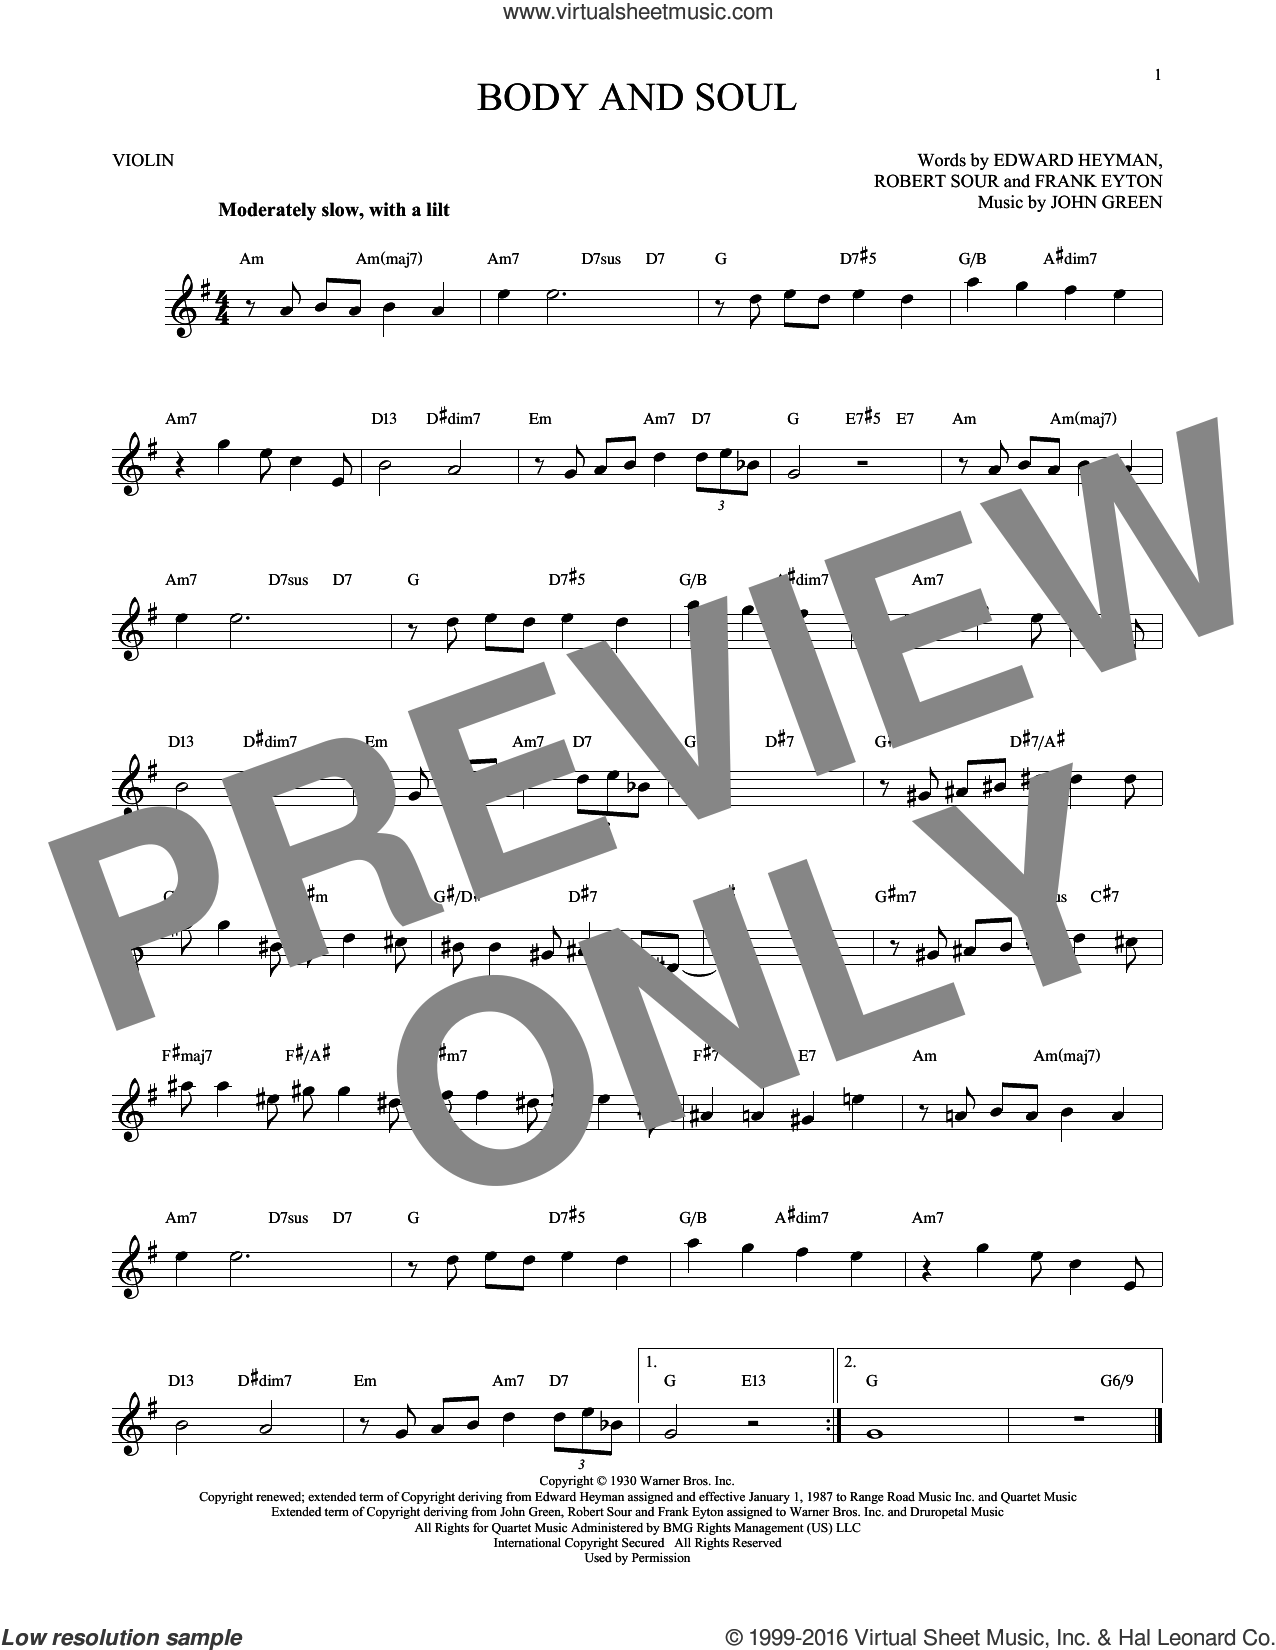 Body And Soul sheet music for violin solo by Edward Heyman, Tony Bennett & Amy Winehouse, Frank Eyton, Johnny Green and Robert Sour, intermediate skill level